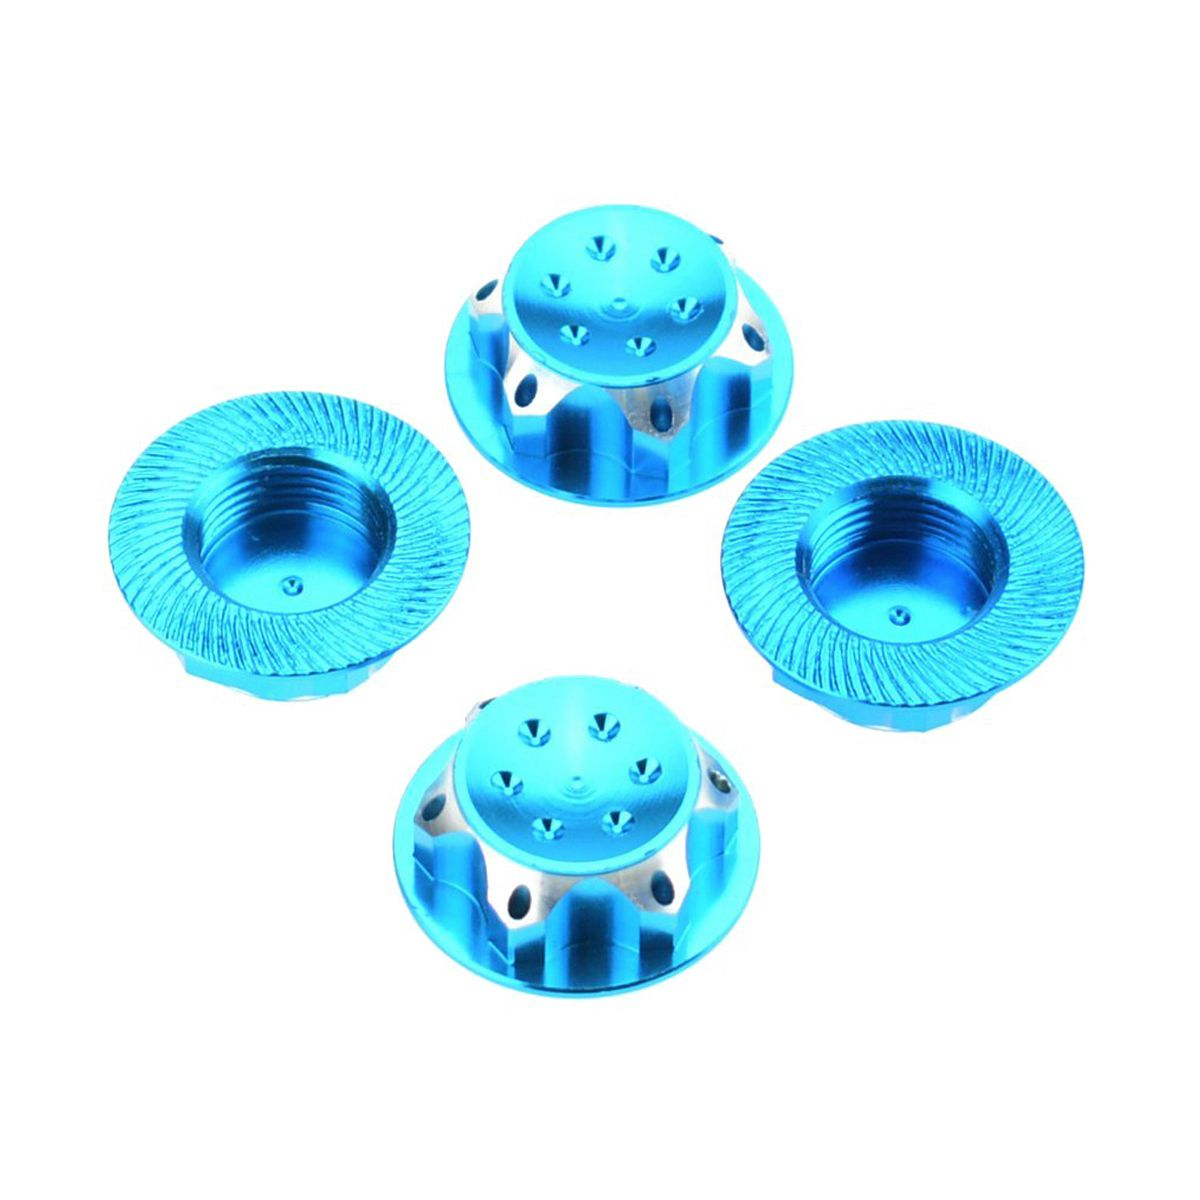 ABWE Best Sale 4Pcs RC Buggy 1/8 <font><b>Scale</b></font> 17mm Dust Lock Nuts Adapter for RC Off-Road Truck Redcat LOSI Team-C <font><b>Wheel</b></font> and Rims Nut image